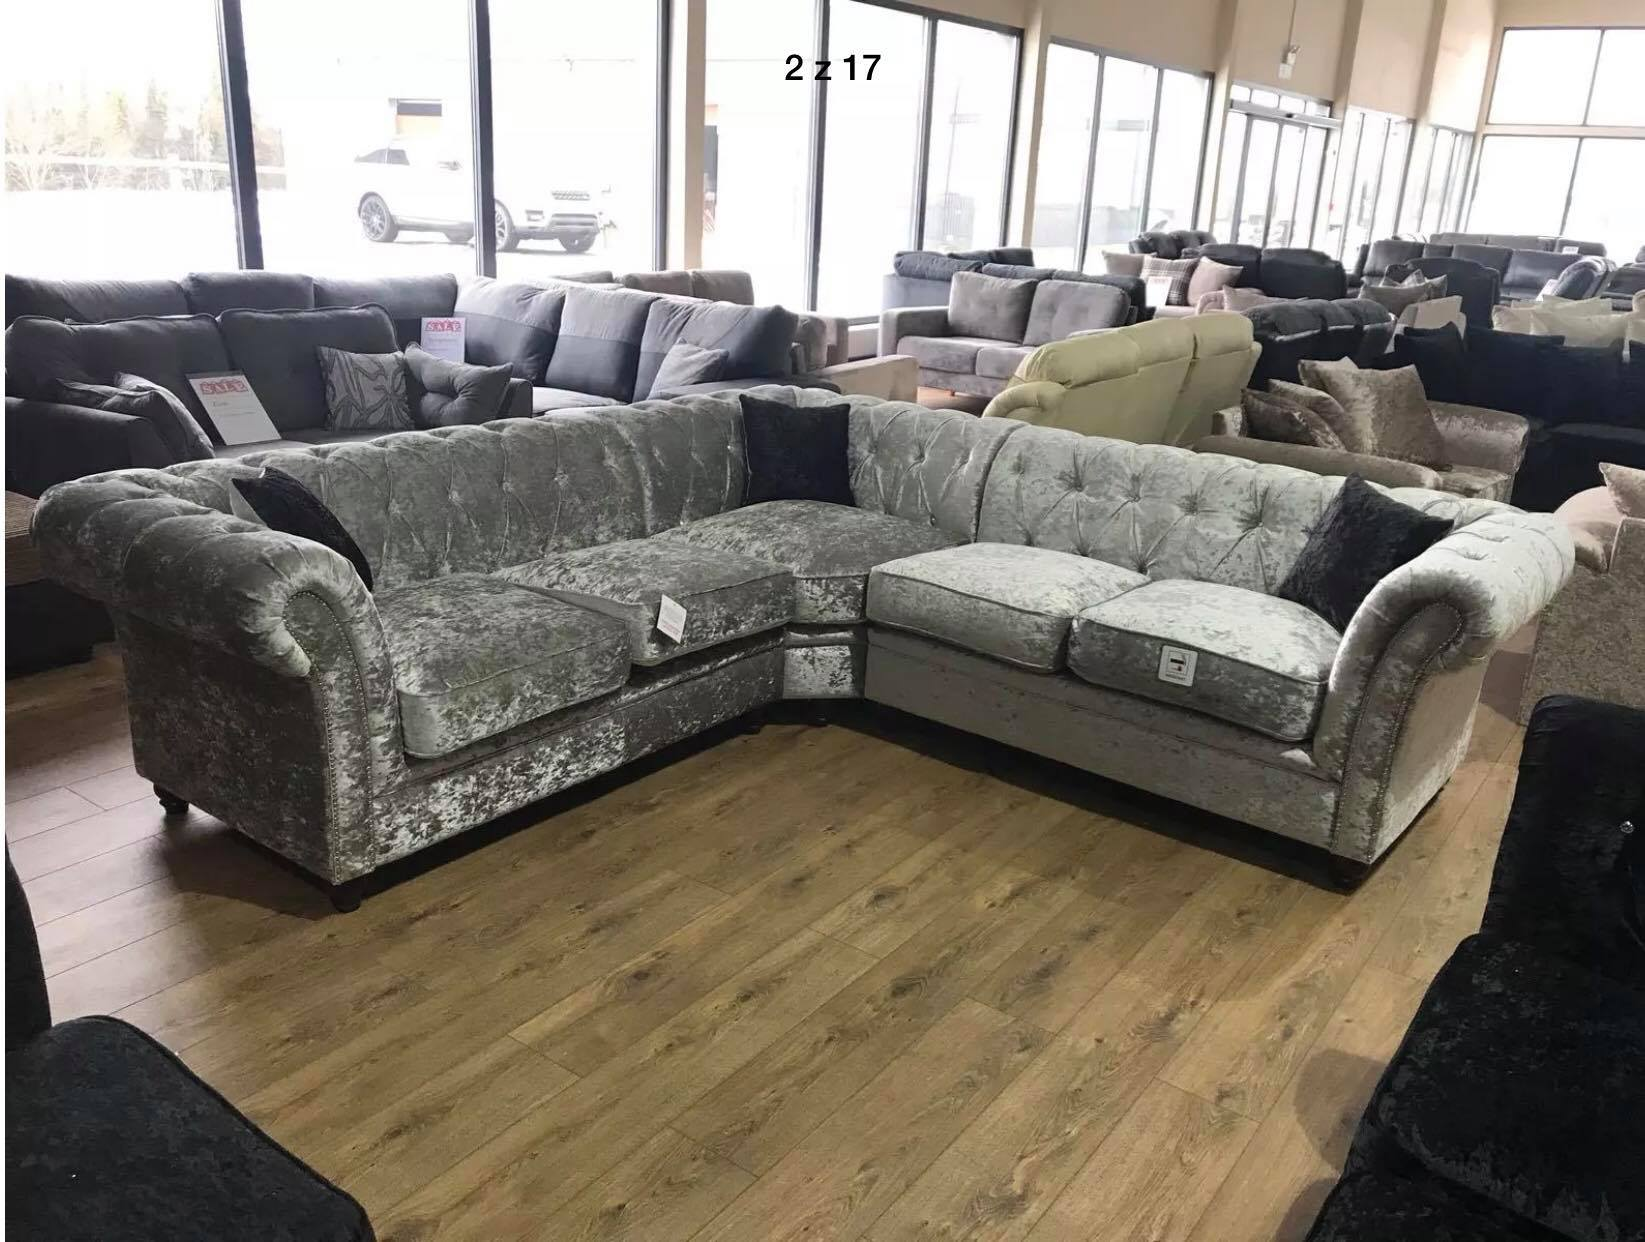 Derby Chesterfield Corner Suite Furnico Living - Derby-chesterfield-sofa